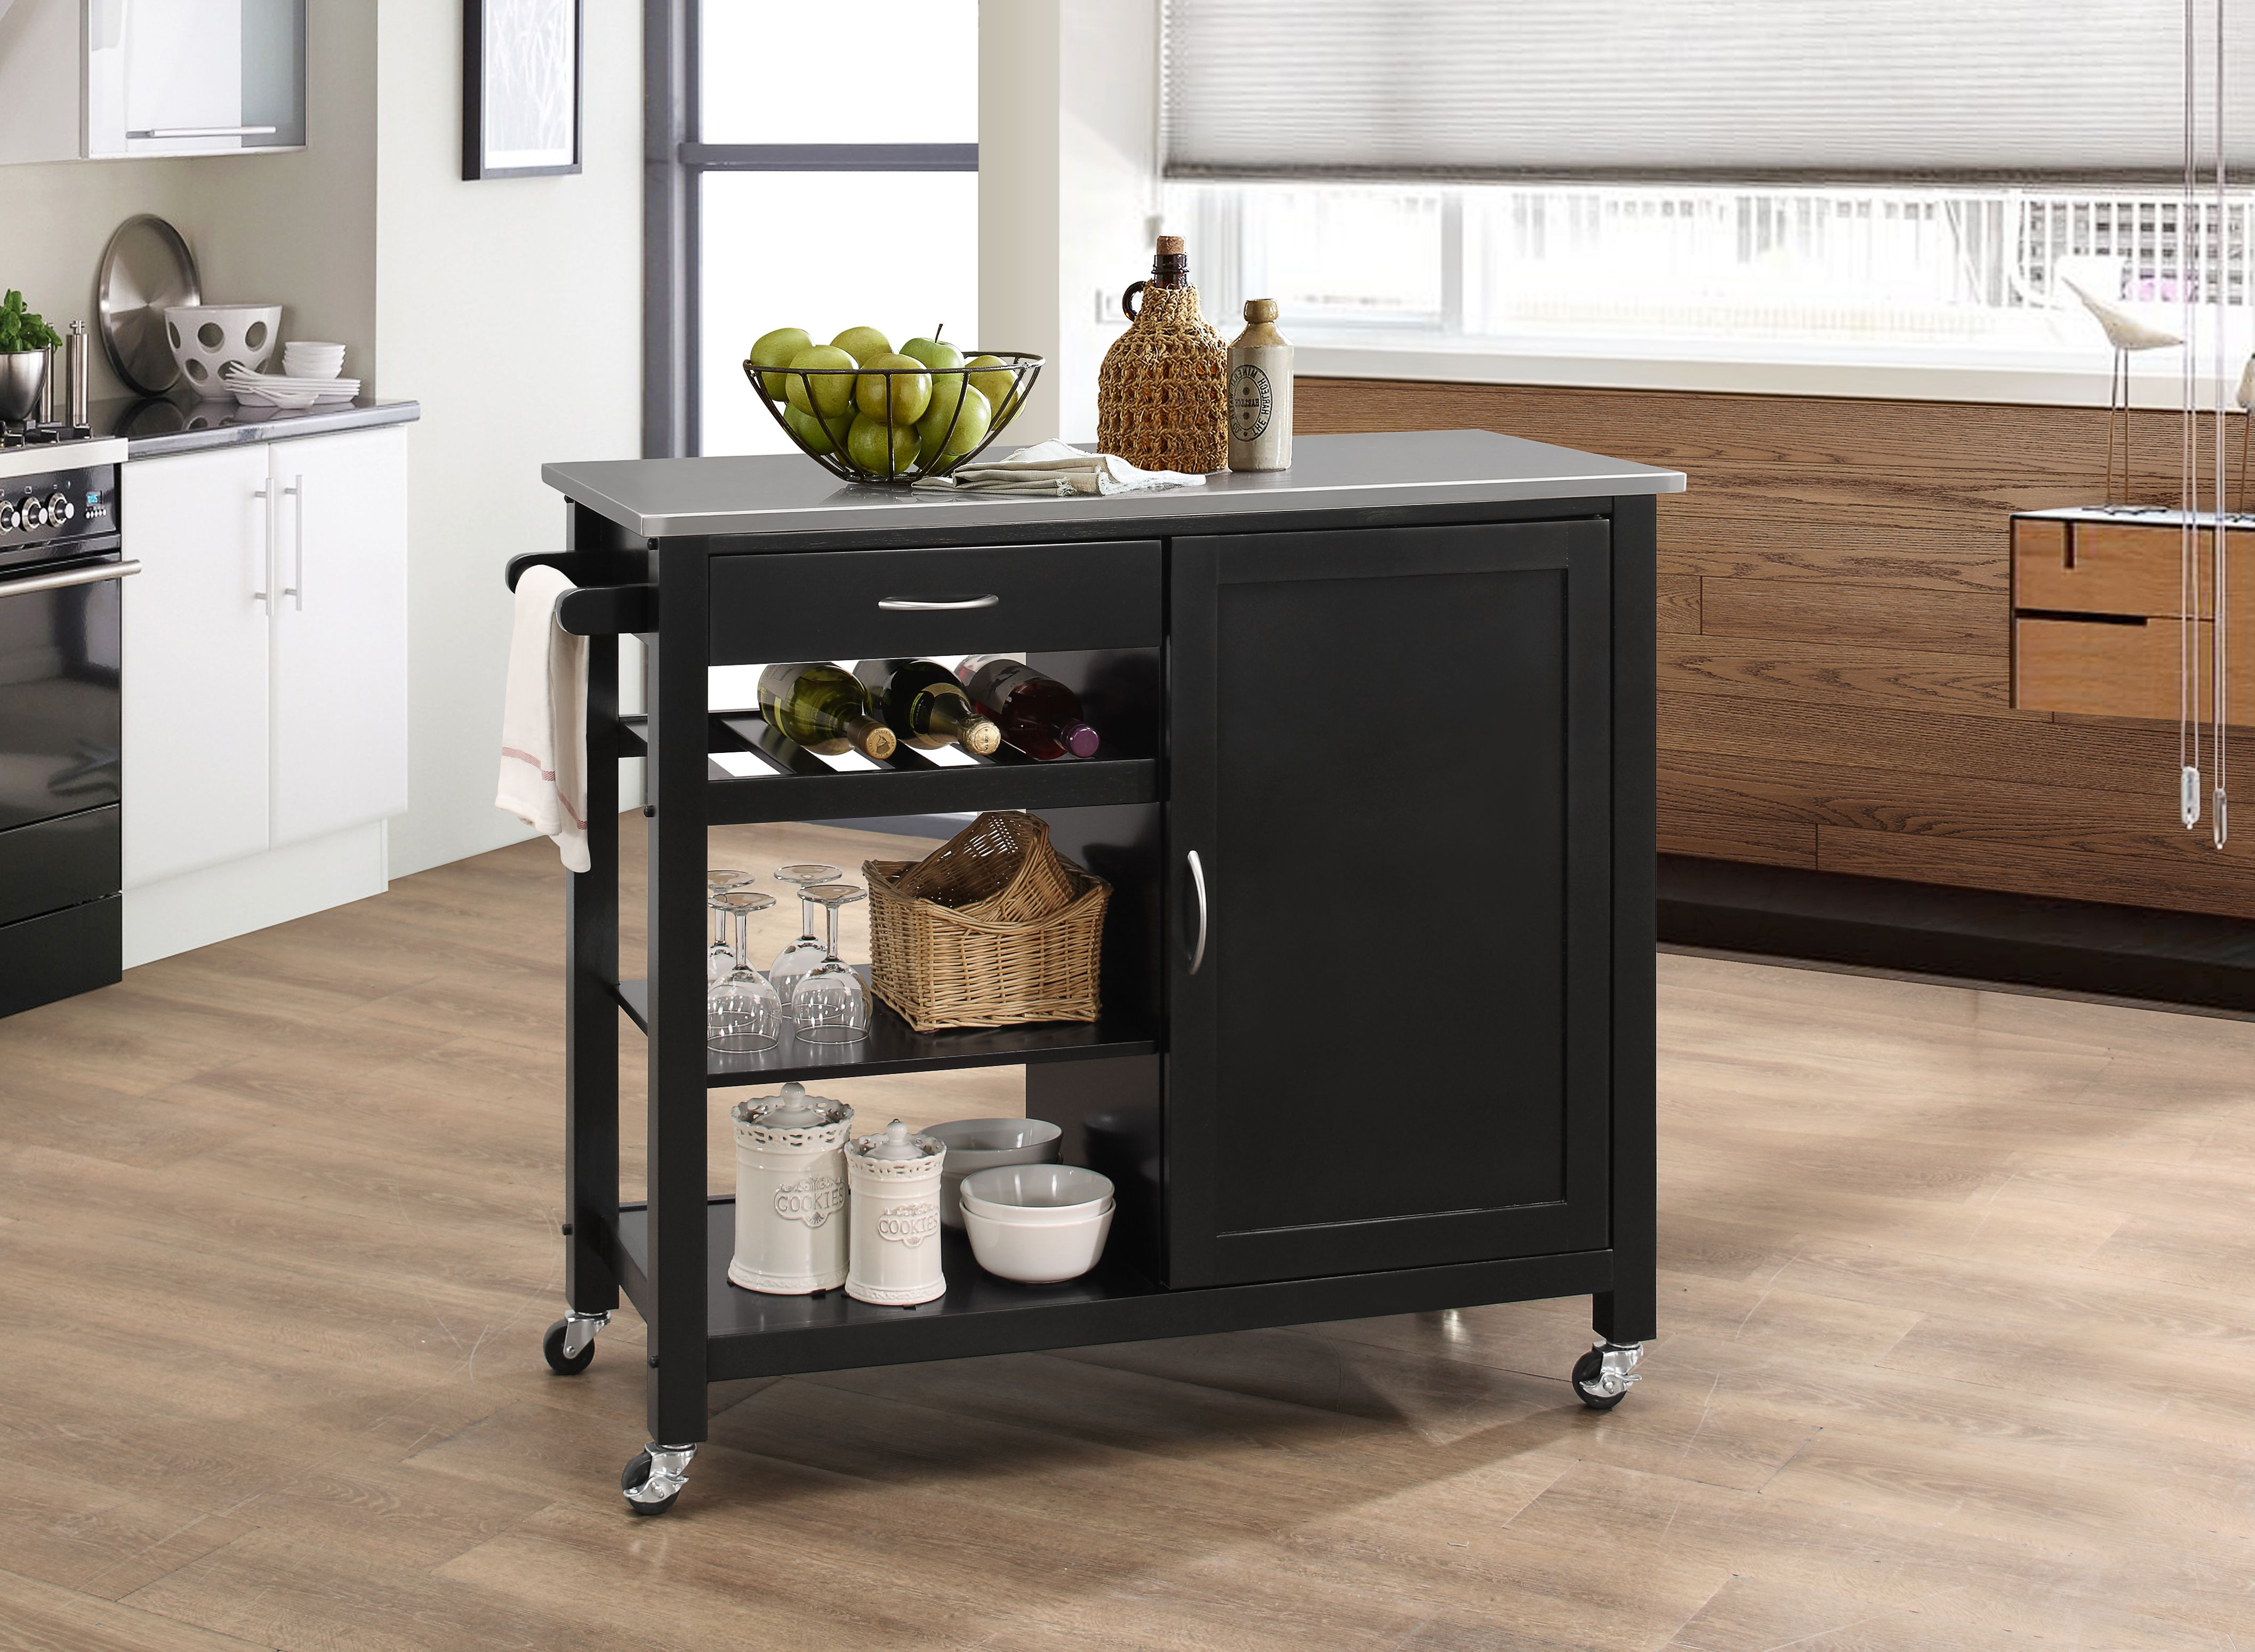 The Warehouse At Huck Finn Furniture Store In Albany Ny Kitchen Cart Black Kitchens Kitchen Island Cart